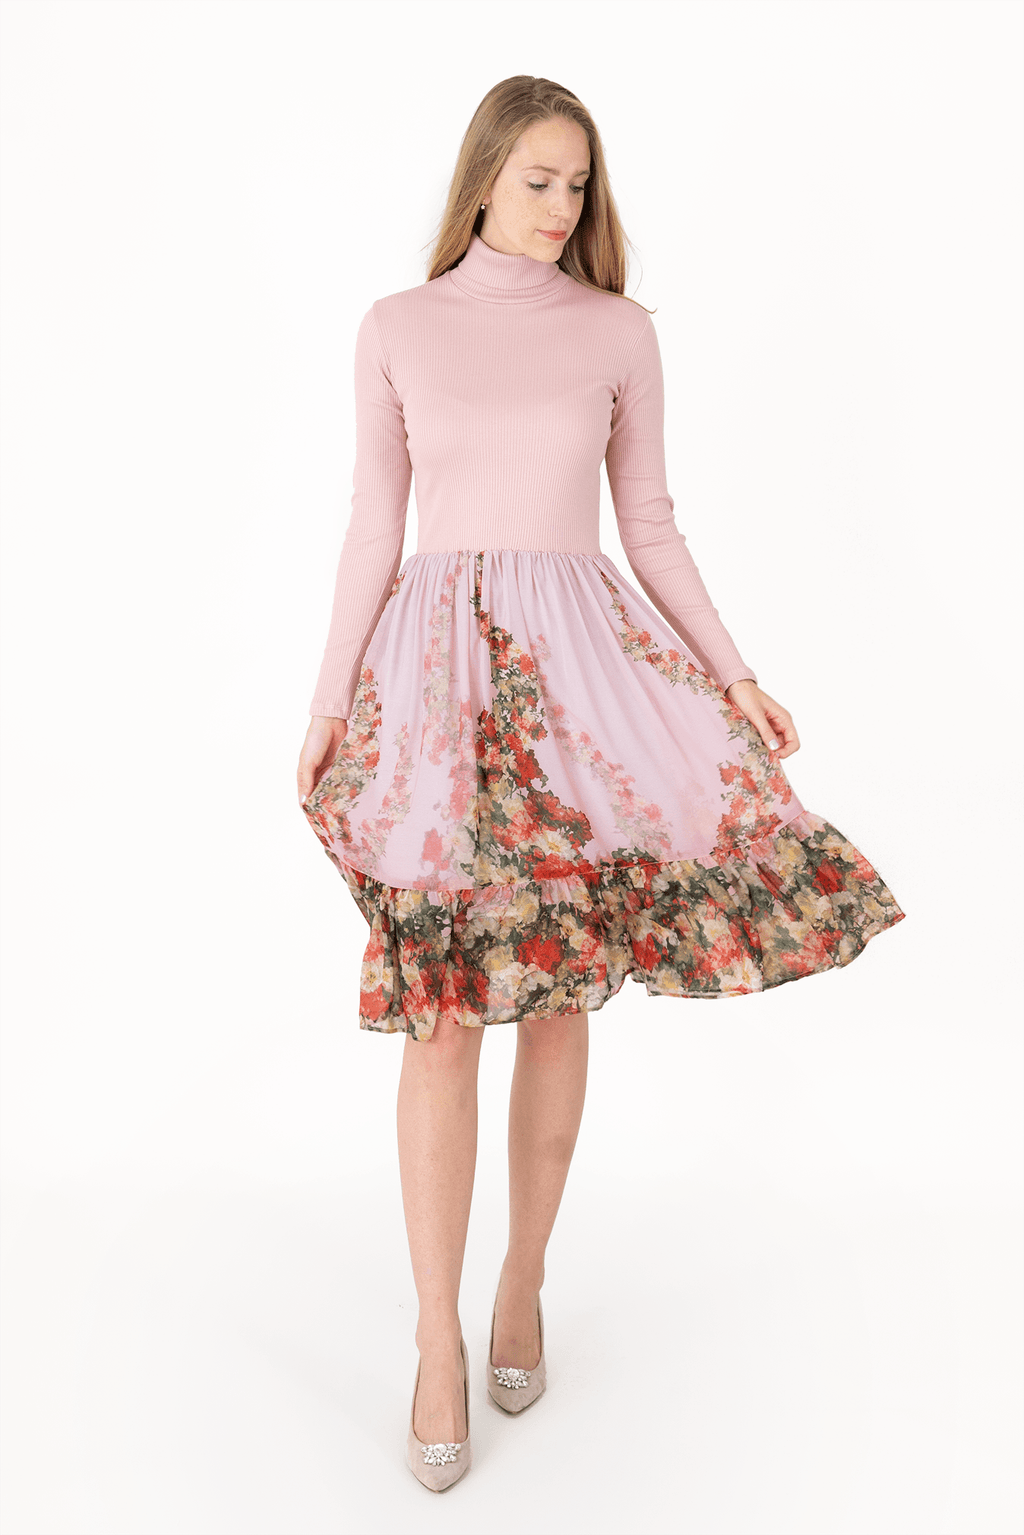 C Long Sleeved Turtleneck Voile Dress - Pink - Super Soft_02